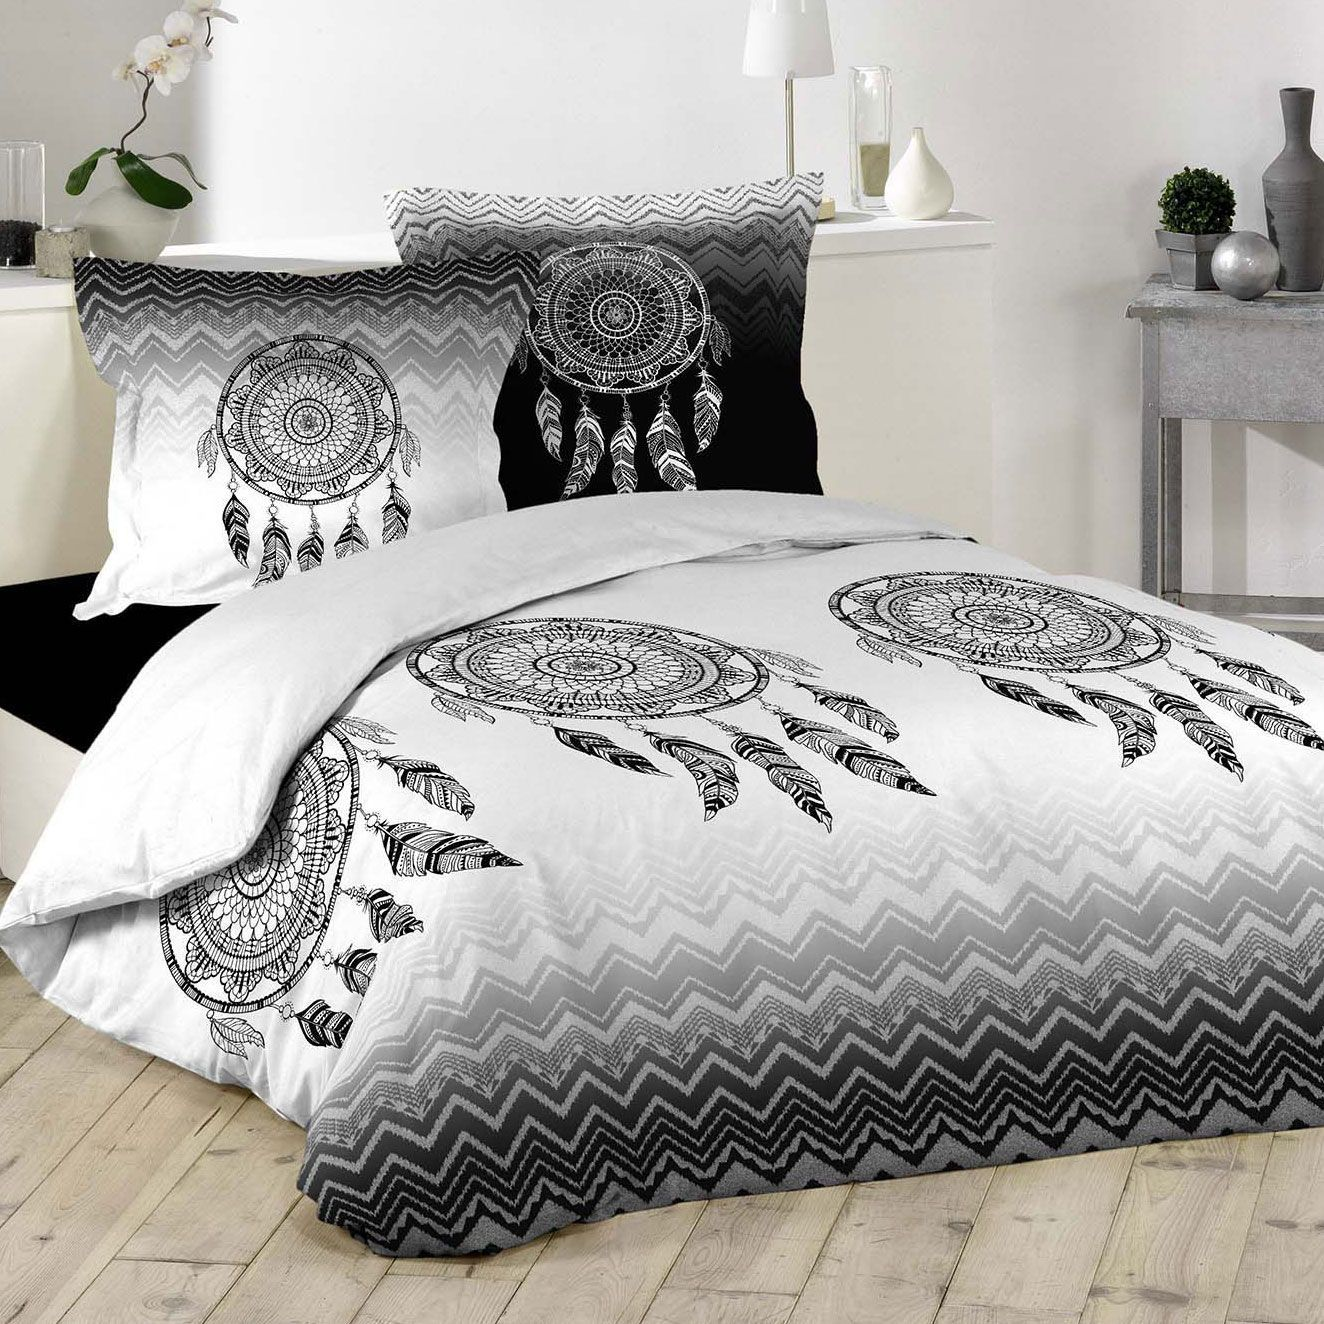 housse de couette et deux taies attrape r ves 100 coton 260 cm gris housse de couette eminza. Black Bedroom Furniture Sets. Home Design Ideas